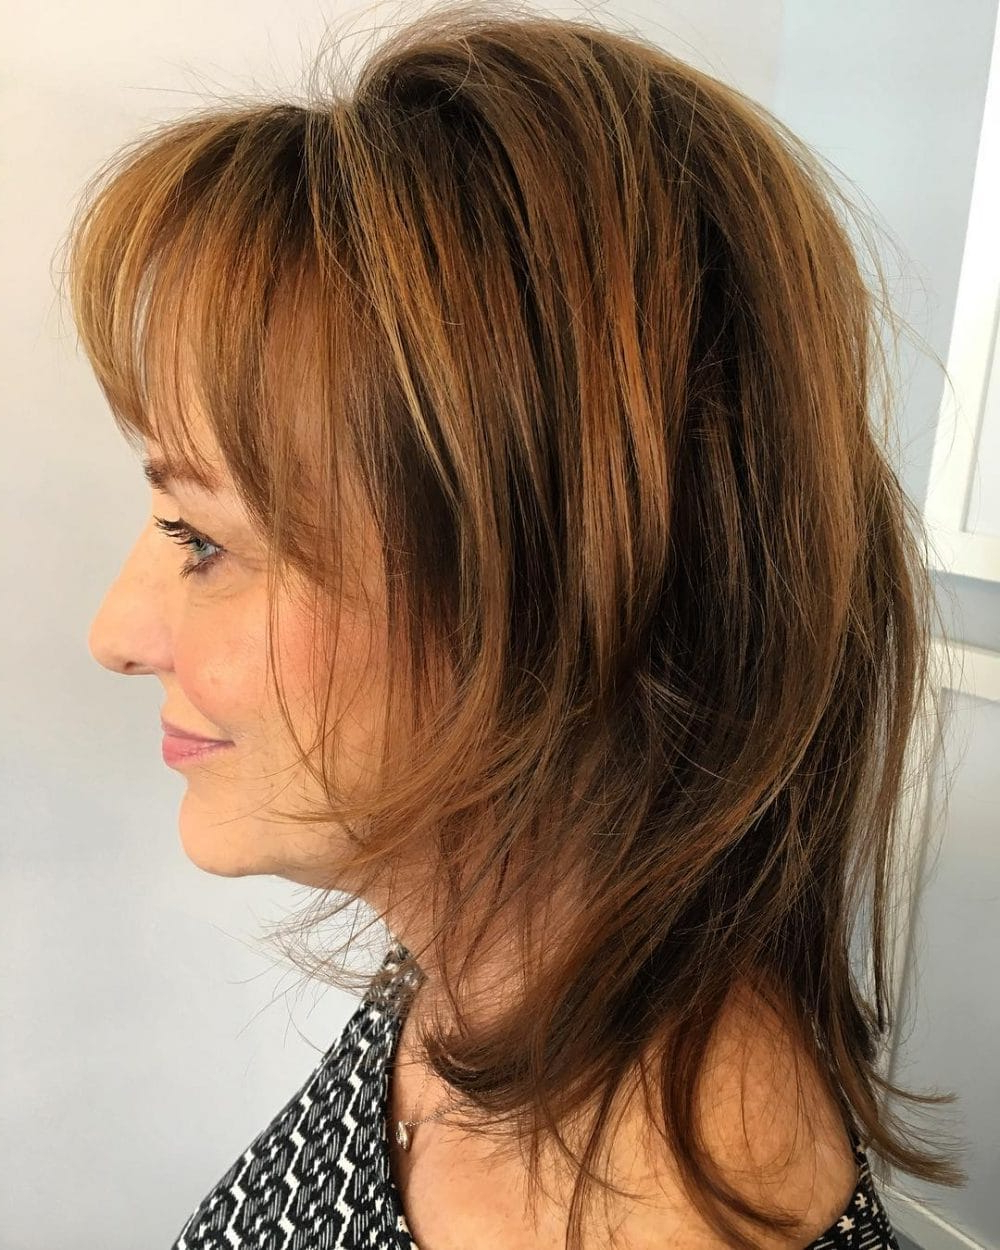 26 Modern Shag Haircuts To Try In 2019 Pertaining To Most Recent Edgy Messy Shag Haircuts With Bangs (View 6 of 20)